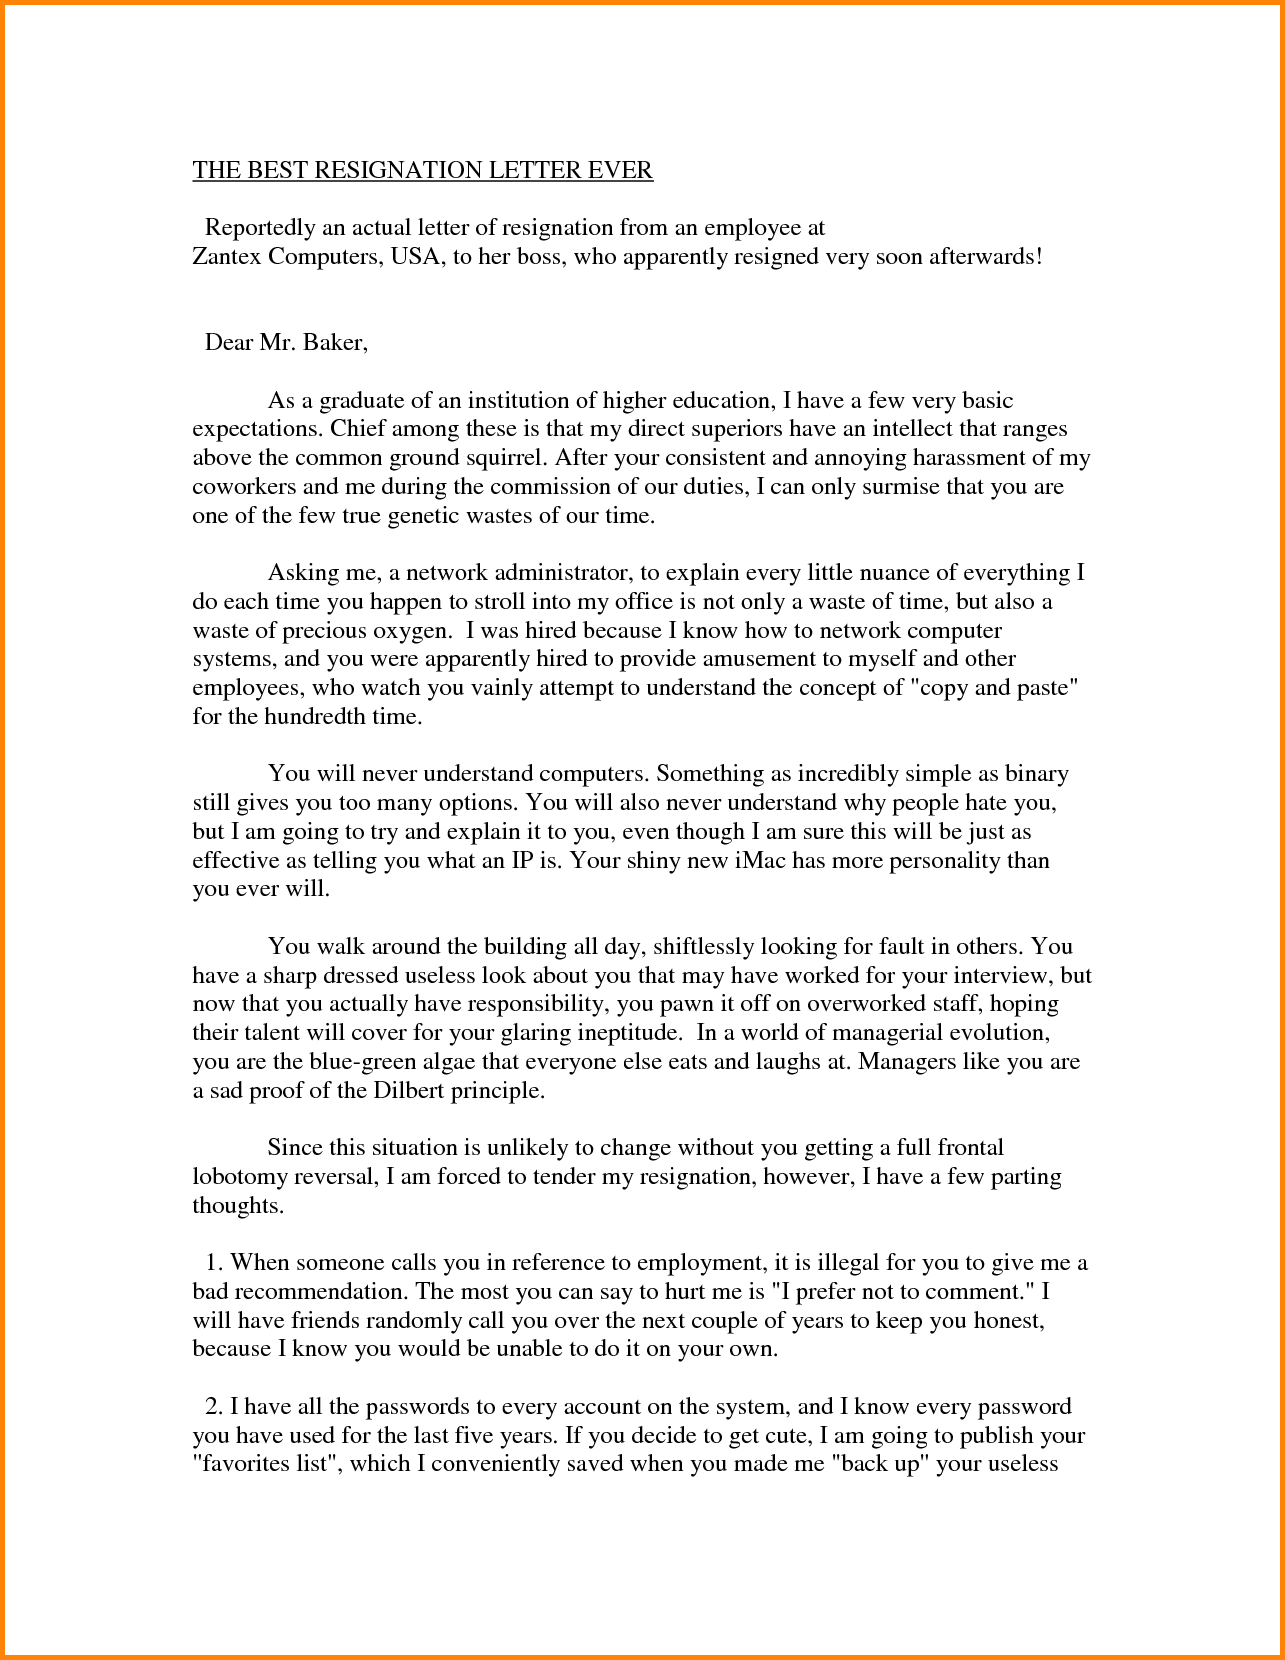 The Best Resignation Letter Ever Writing Sad Break Way Inform Your